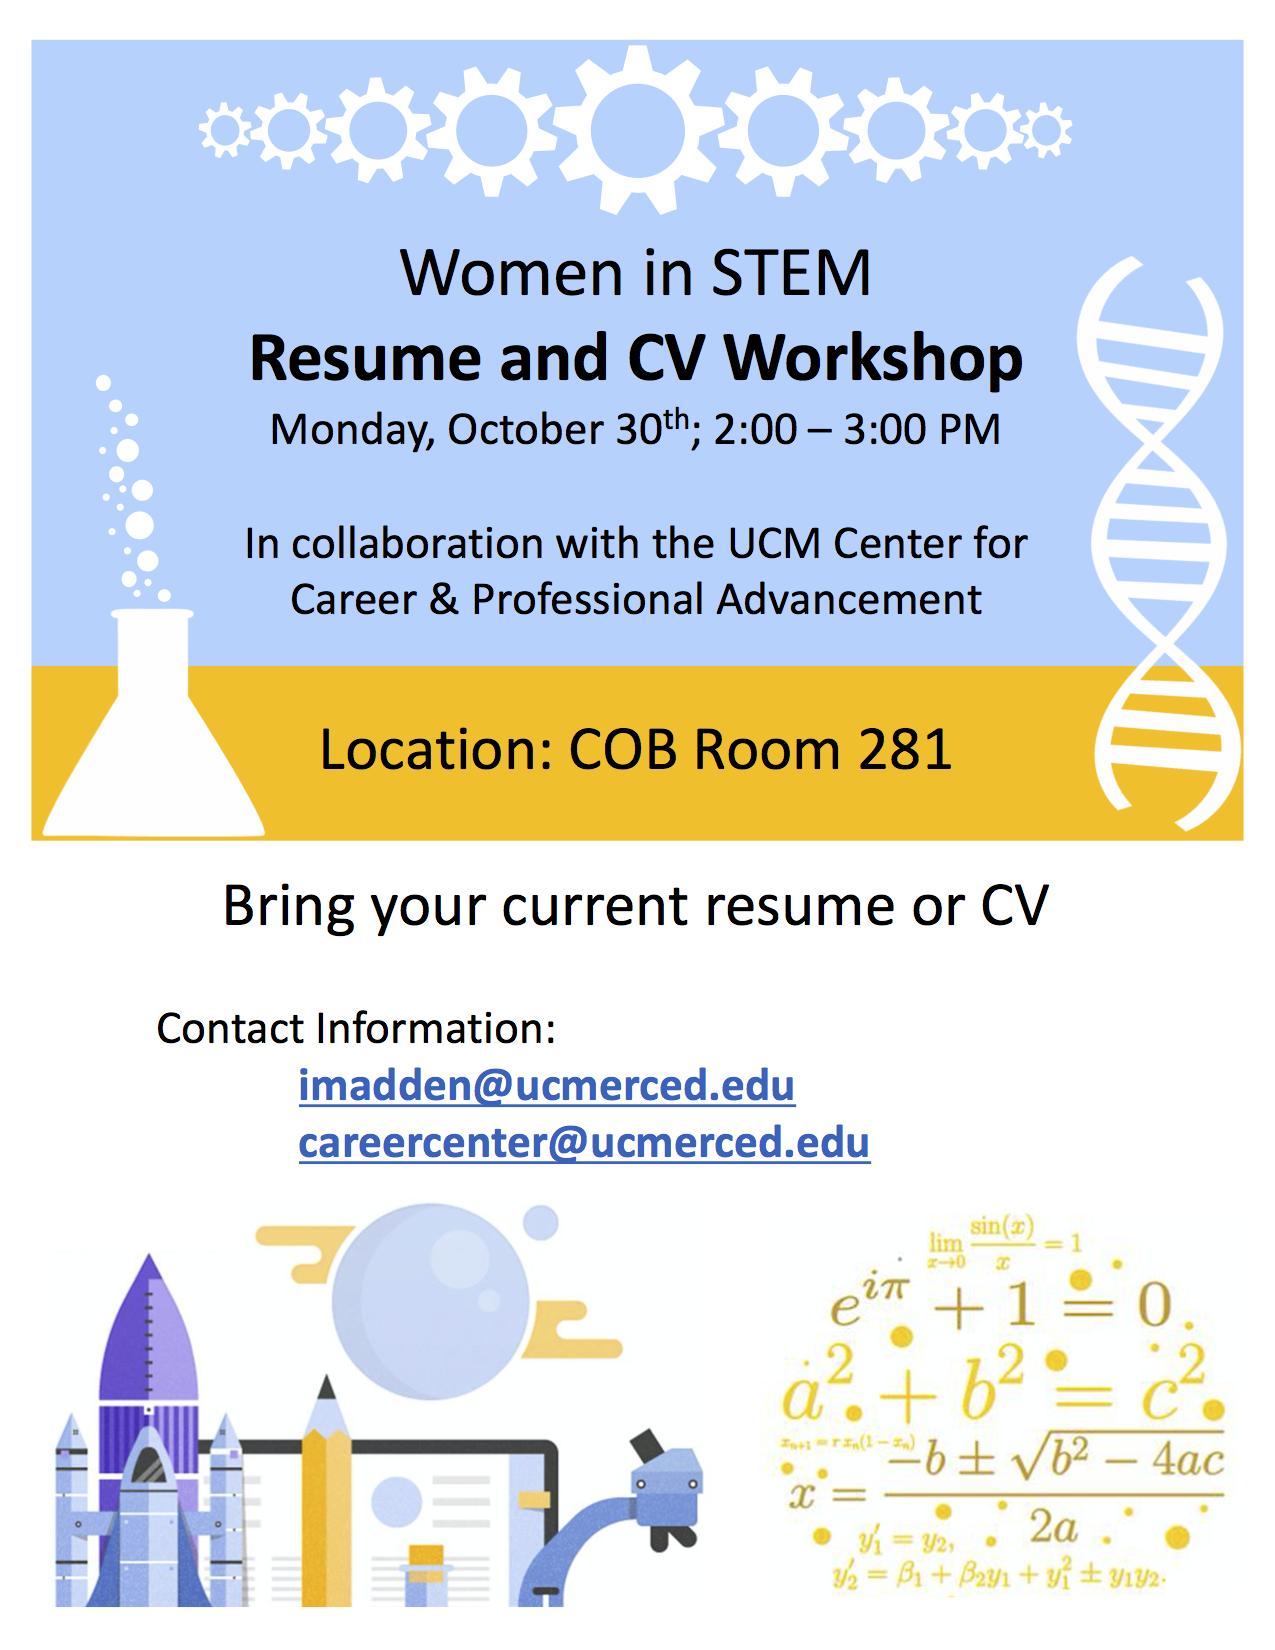 W-STEM resume and CV workshop